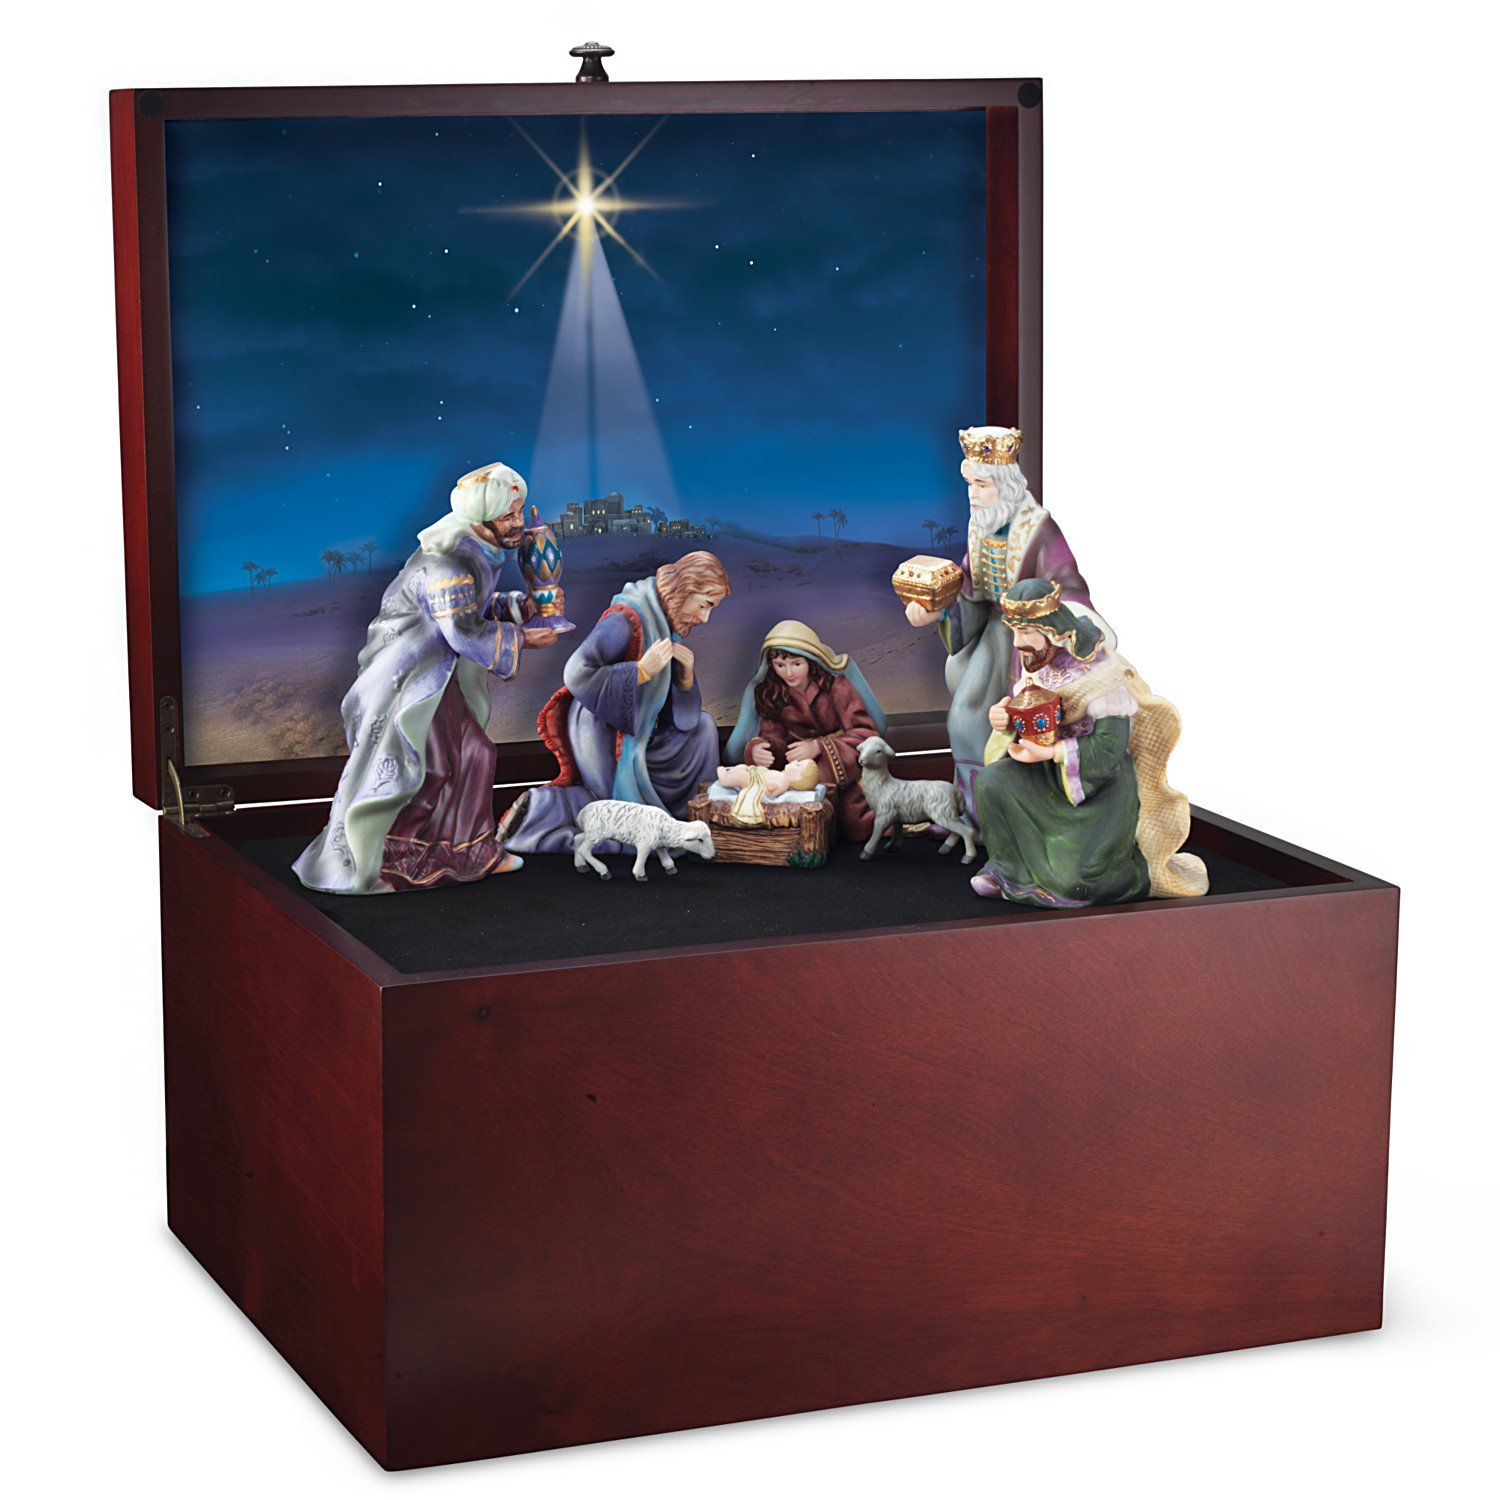 Nativity Wooden Storage Box With Star Of Bethlehem Art by Hawthorne Village by Hawthorne Village